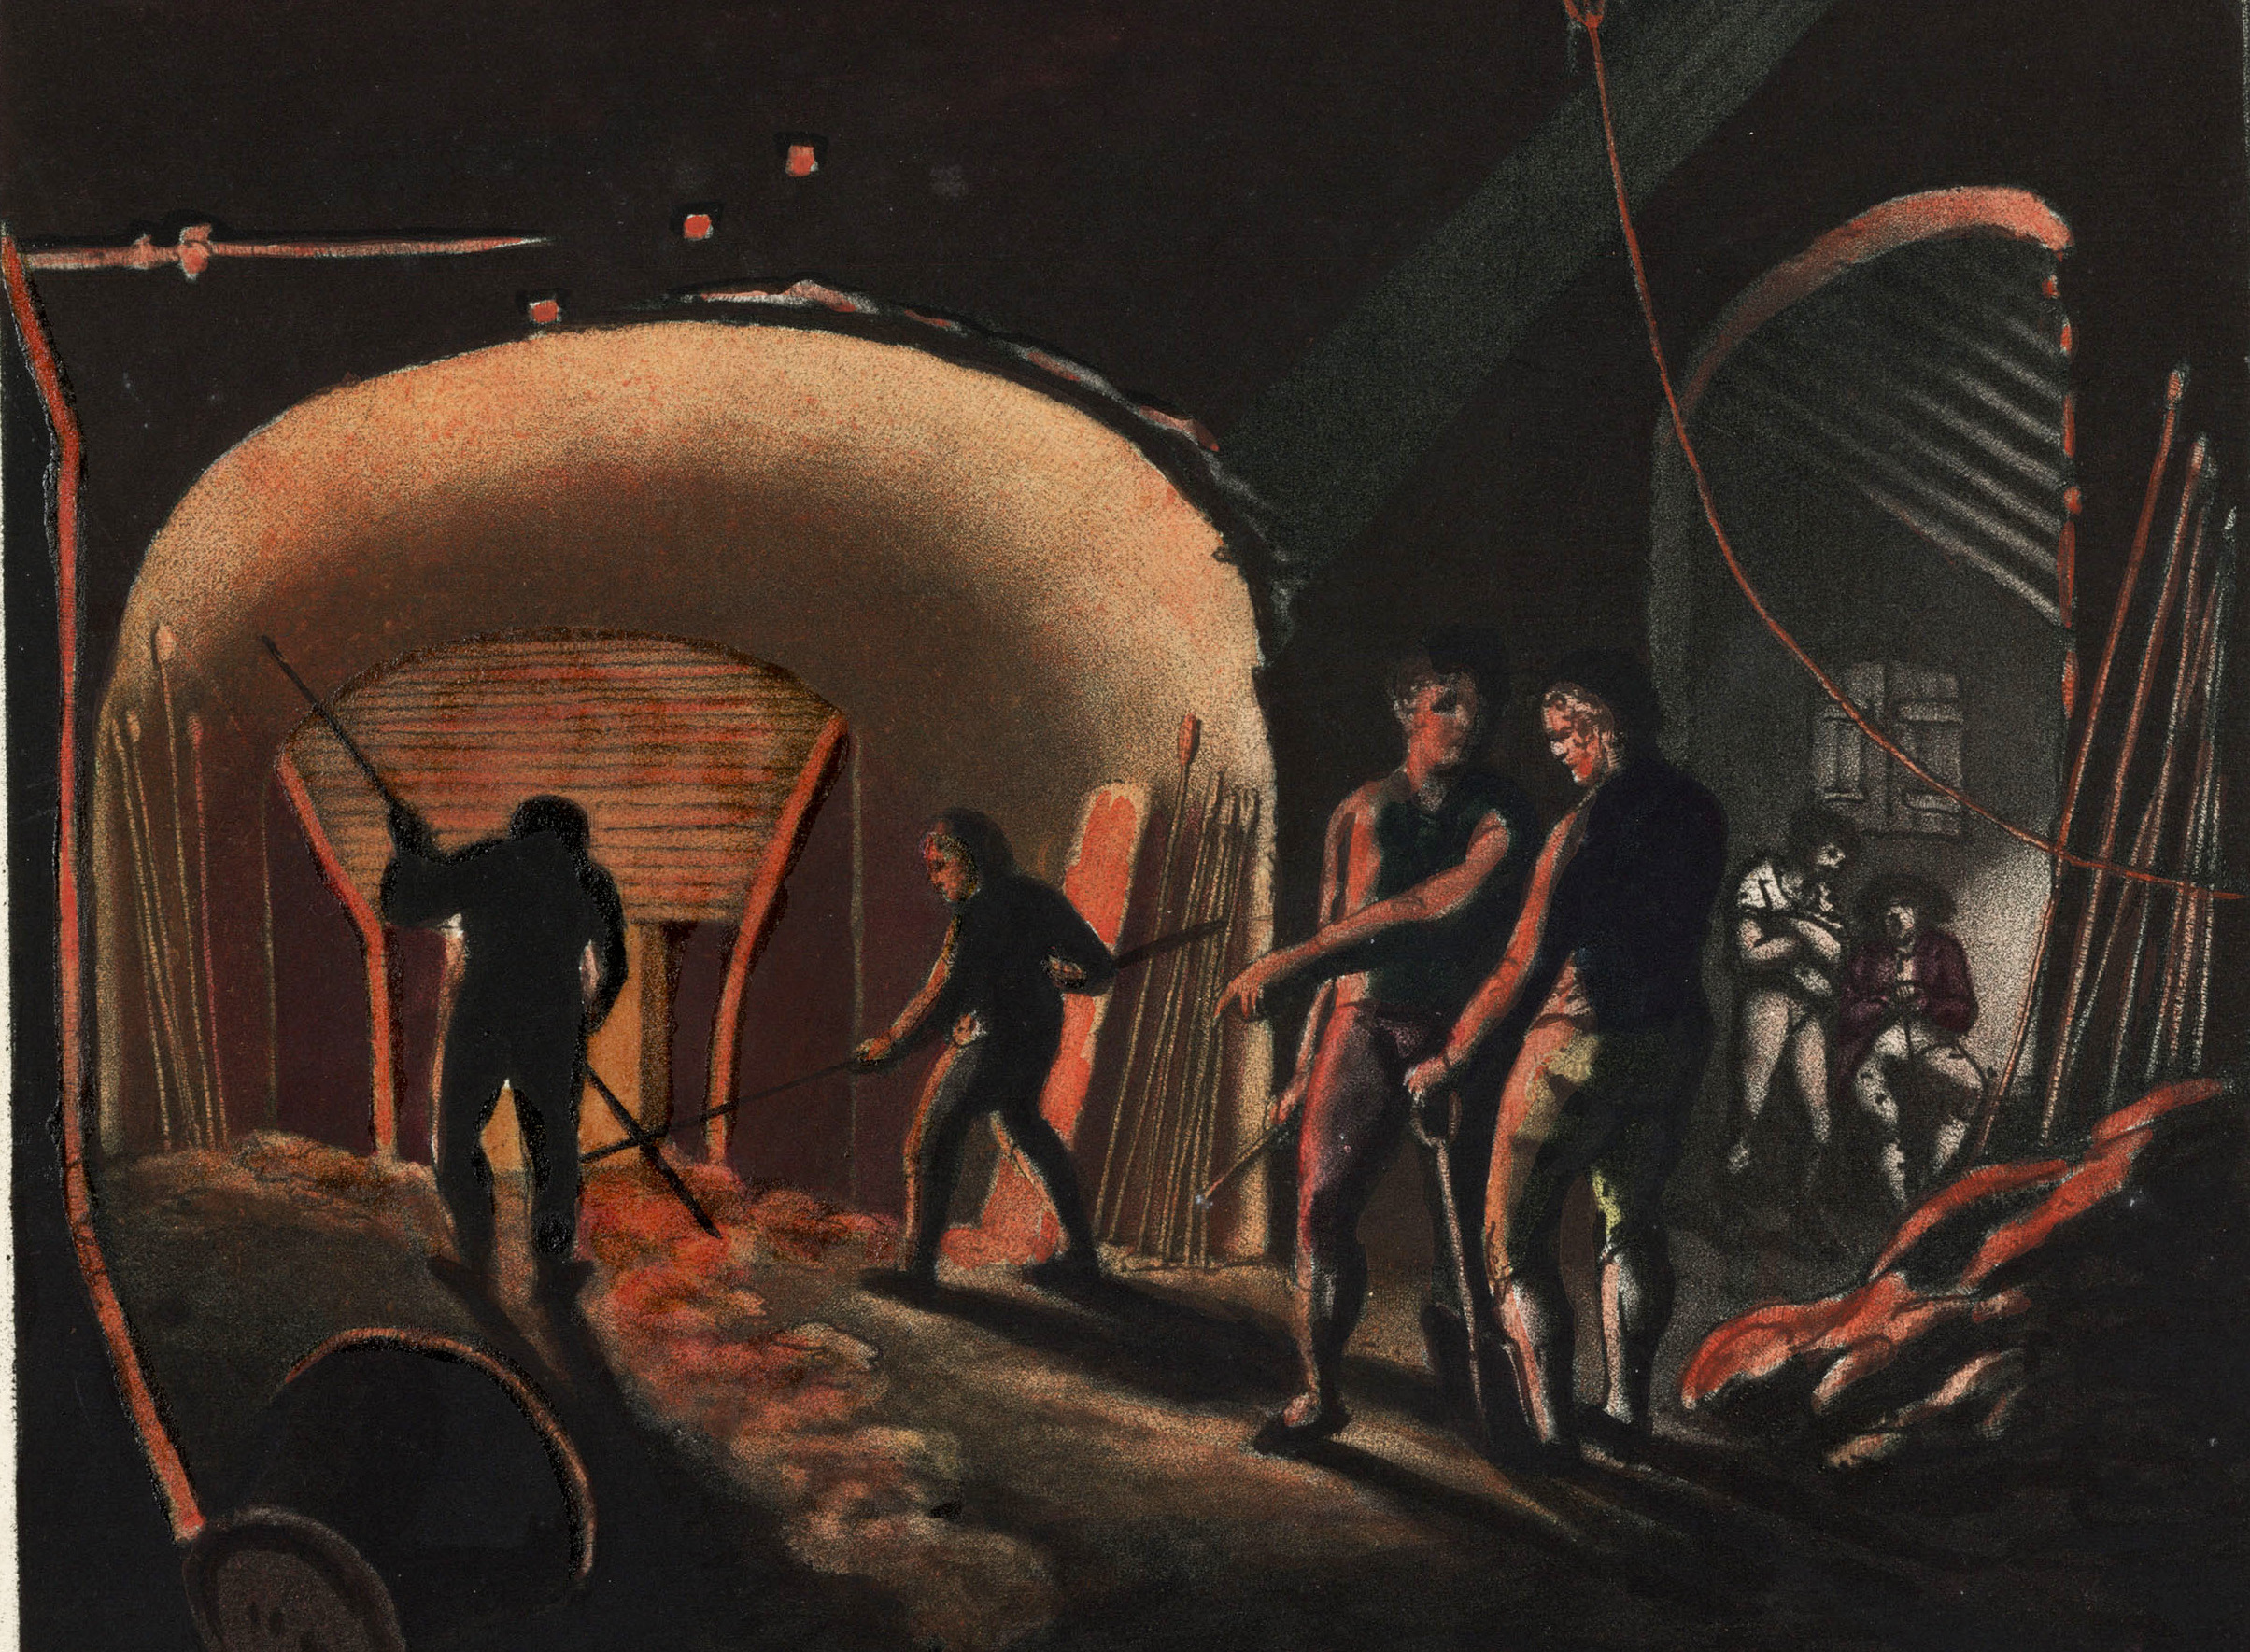 Painting of men working in a foundry